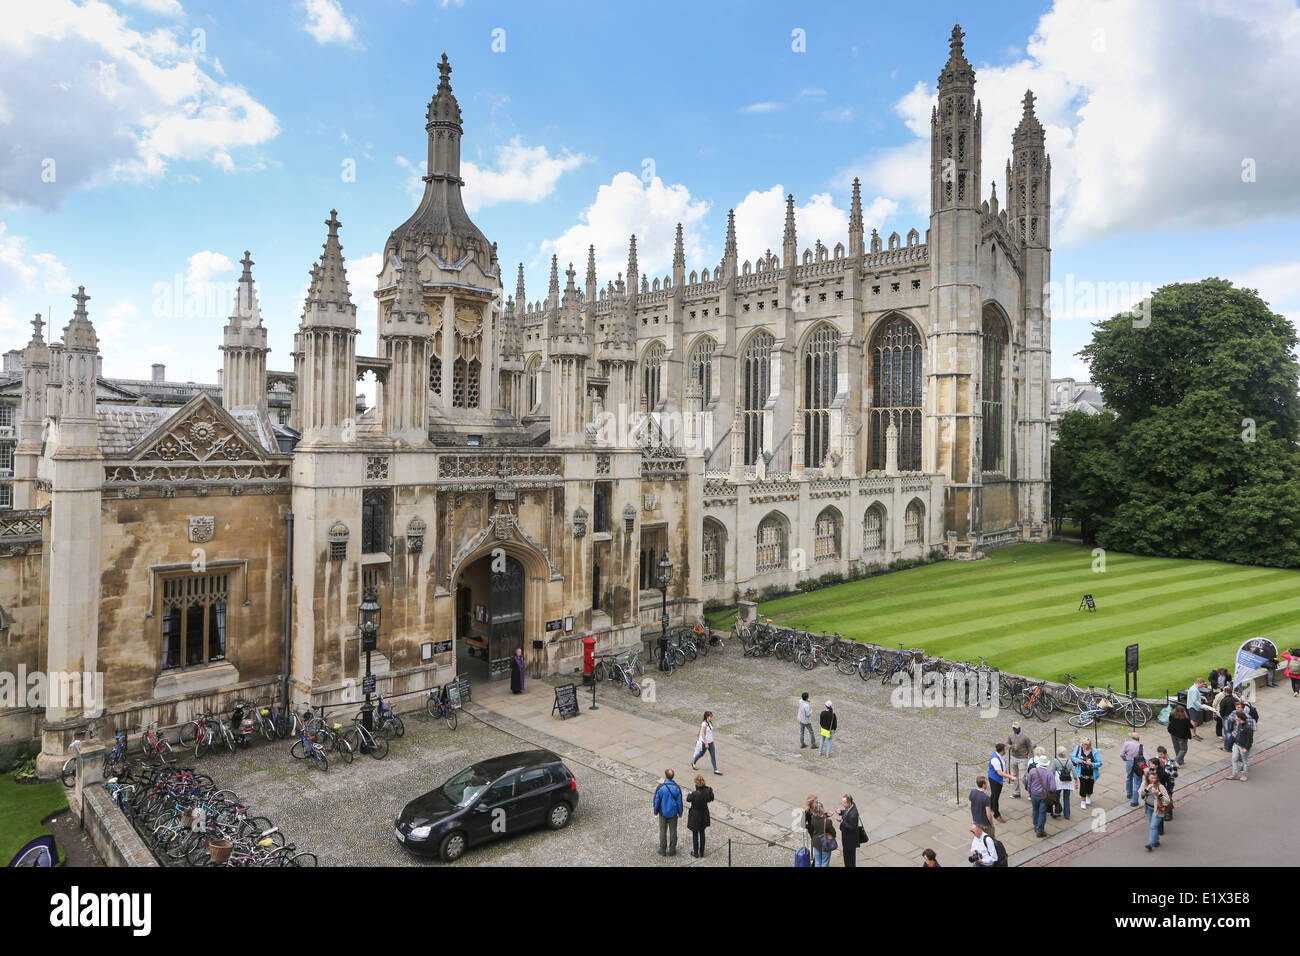 KINGS COLLEGE CAMBRIDGE CHAPEL FROM THE FRONT Stock Photo